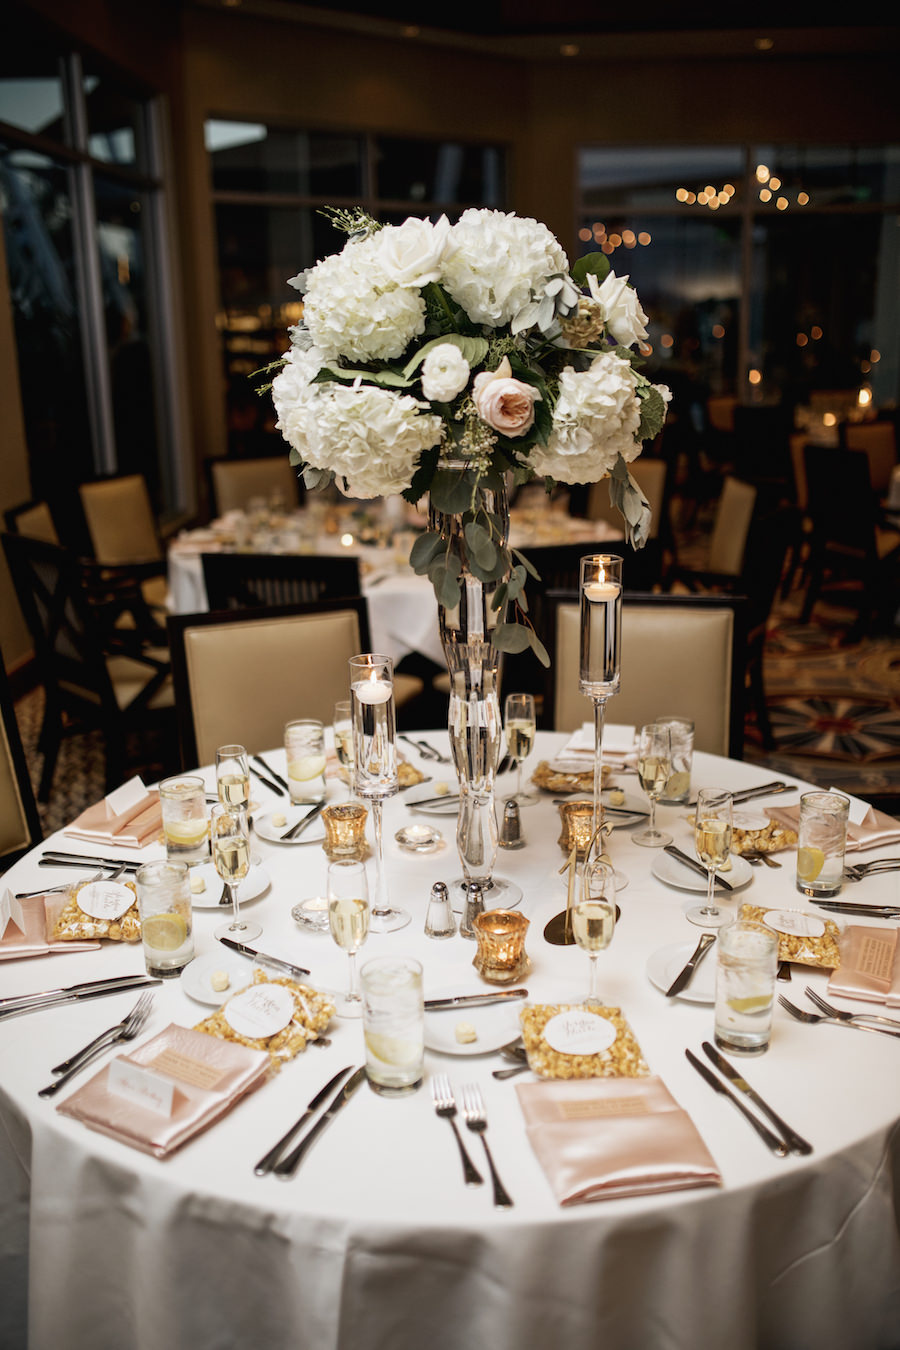 Ivory, Blush and Gold Wedding Reception with Tall White Hydrangea and Blush Rose Centerpieces   Wedding Venue Sarasota Yacht Club   Tampa Bay Wedding Planner NK Productions